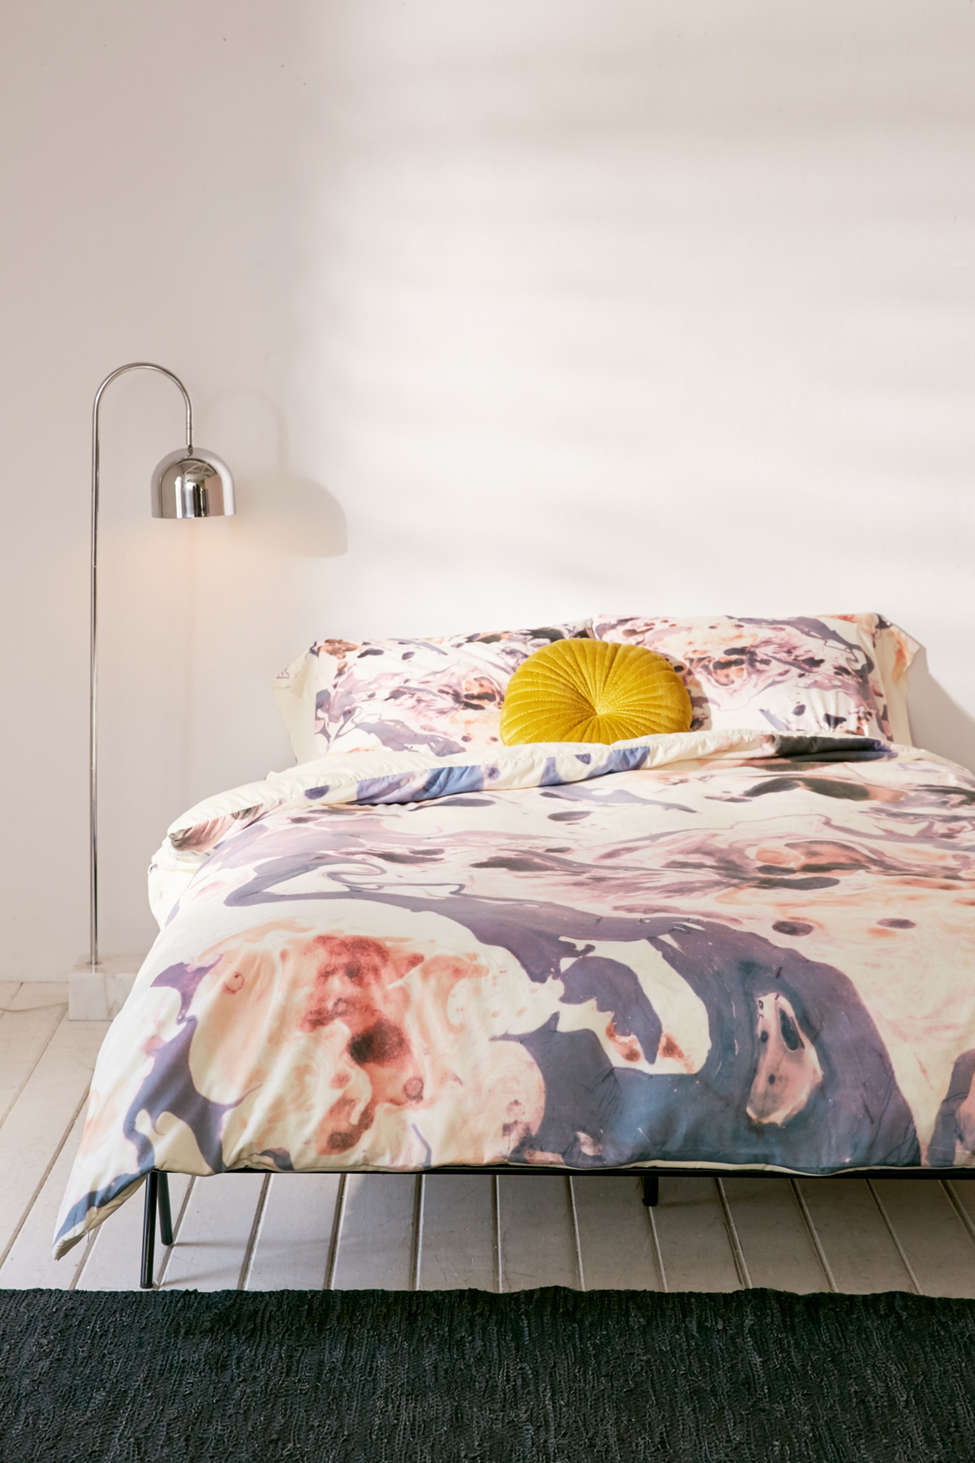 Slide View: 2: Amy Sia For DENY Marbled Terrain Duvet Cover